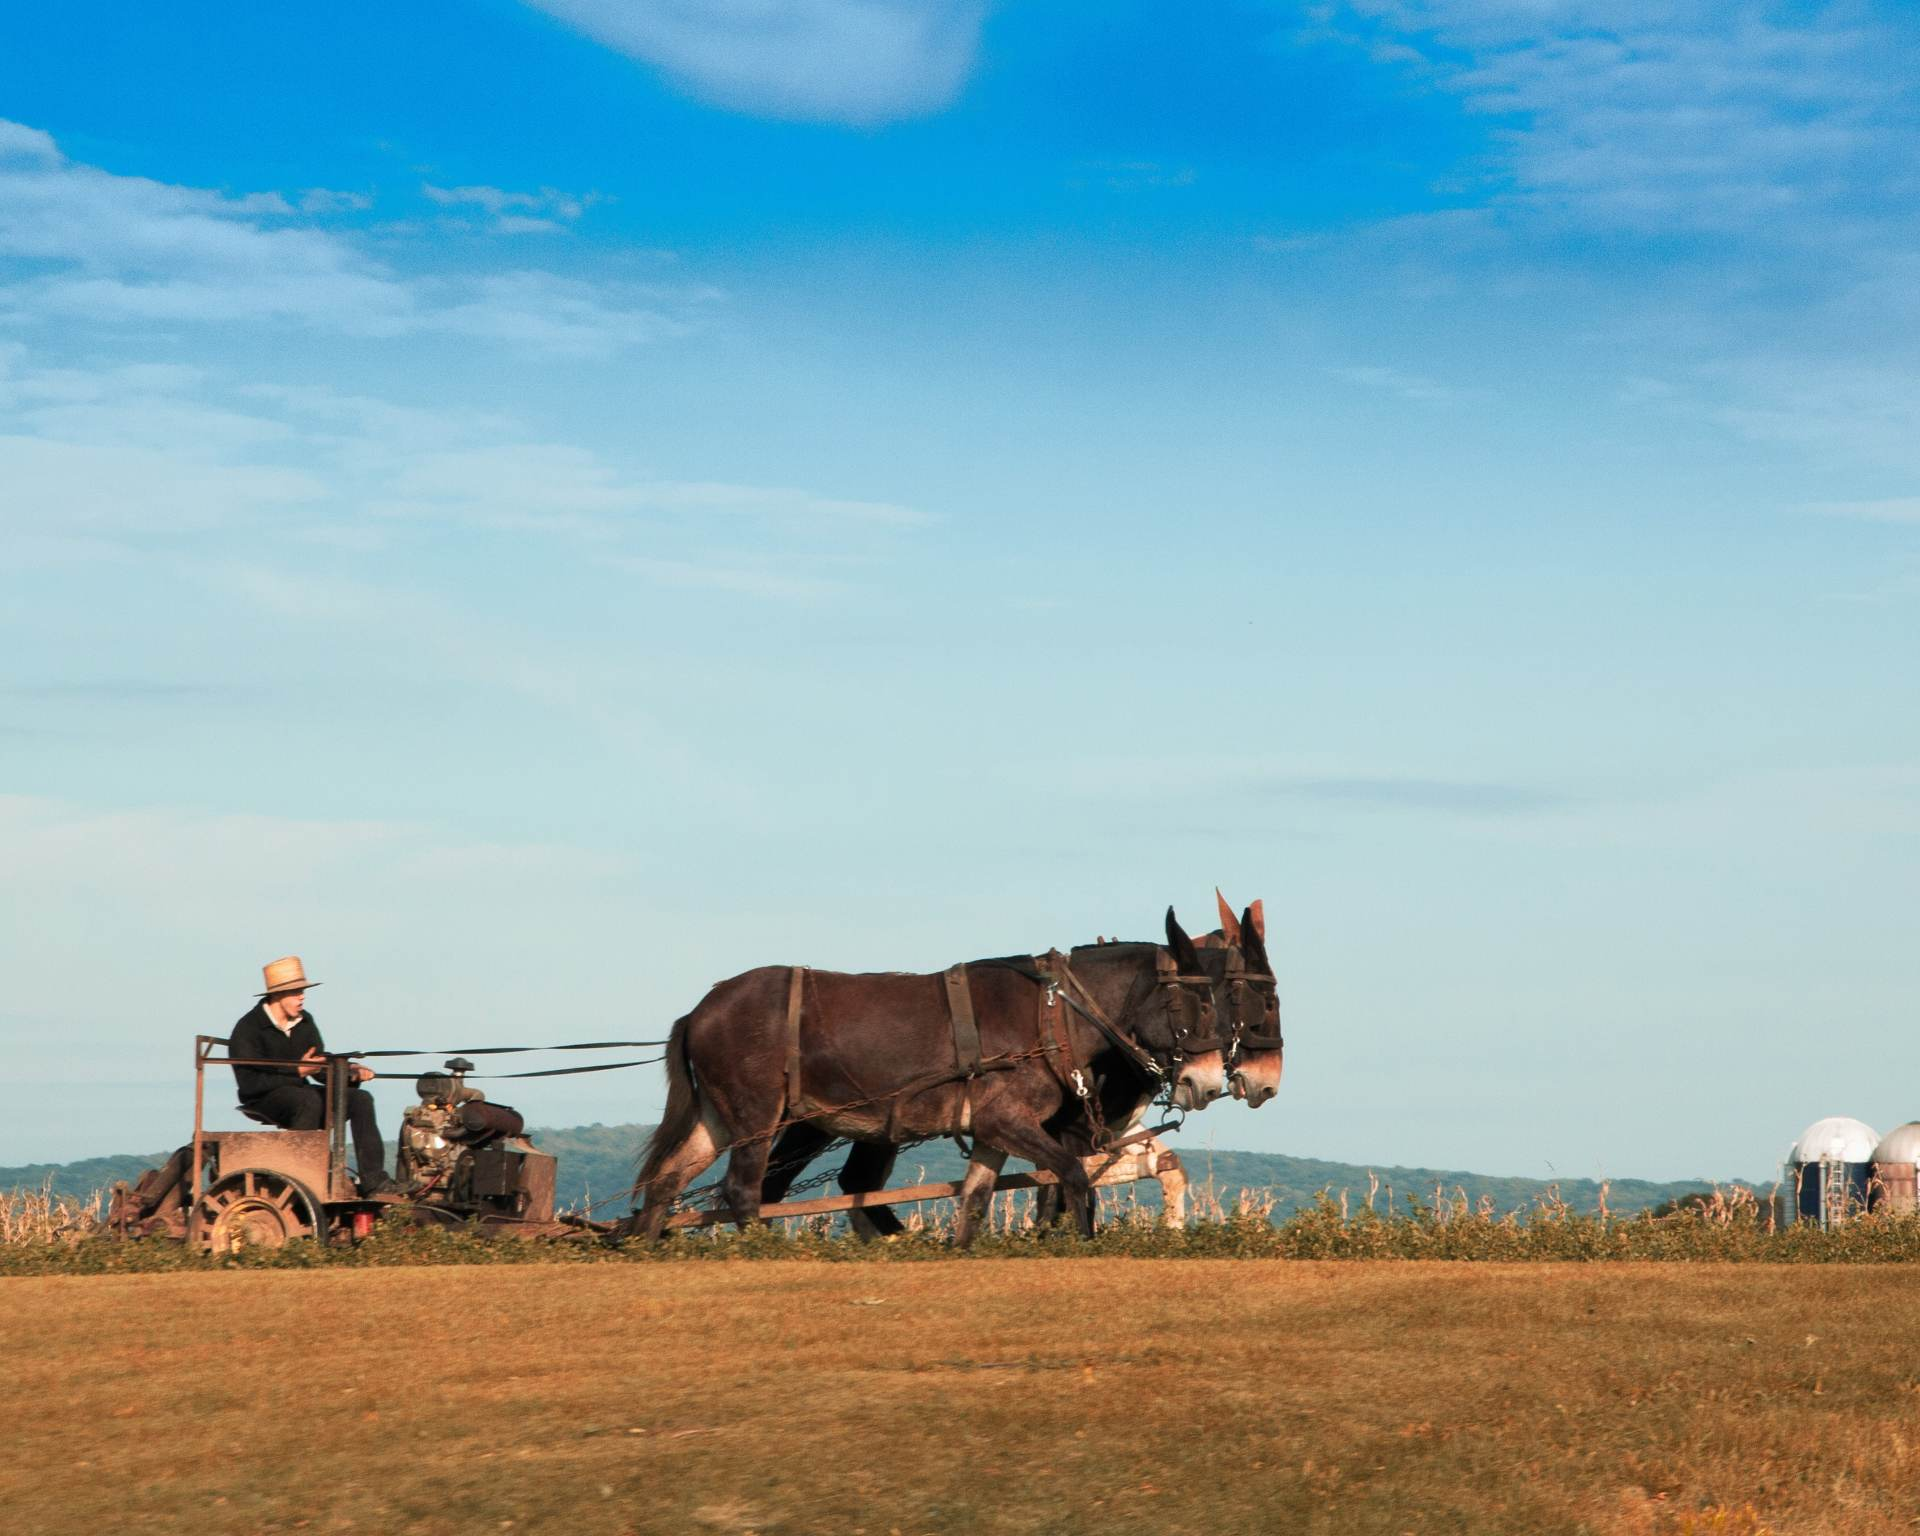 An amish horse cart on farmland